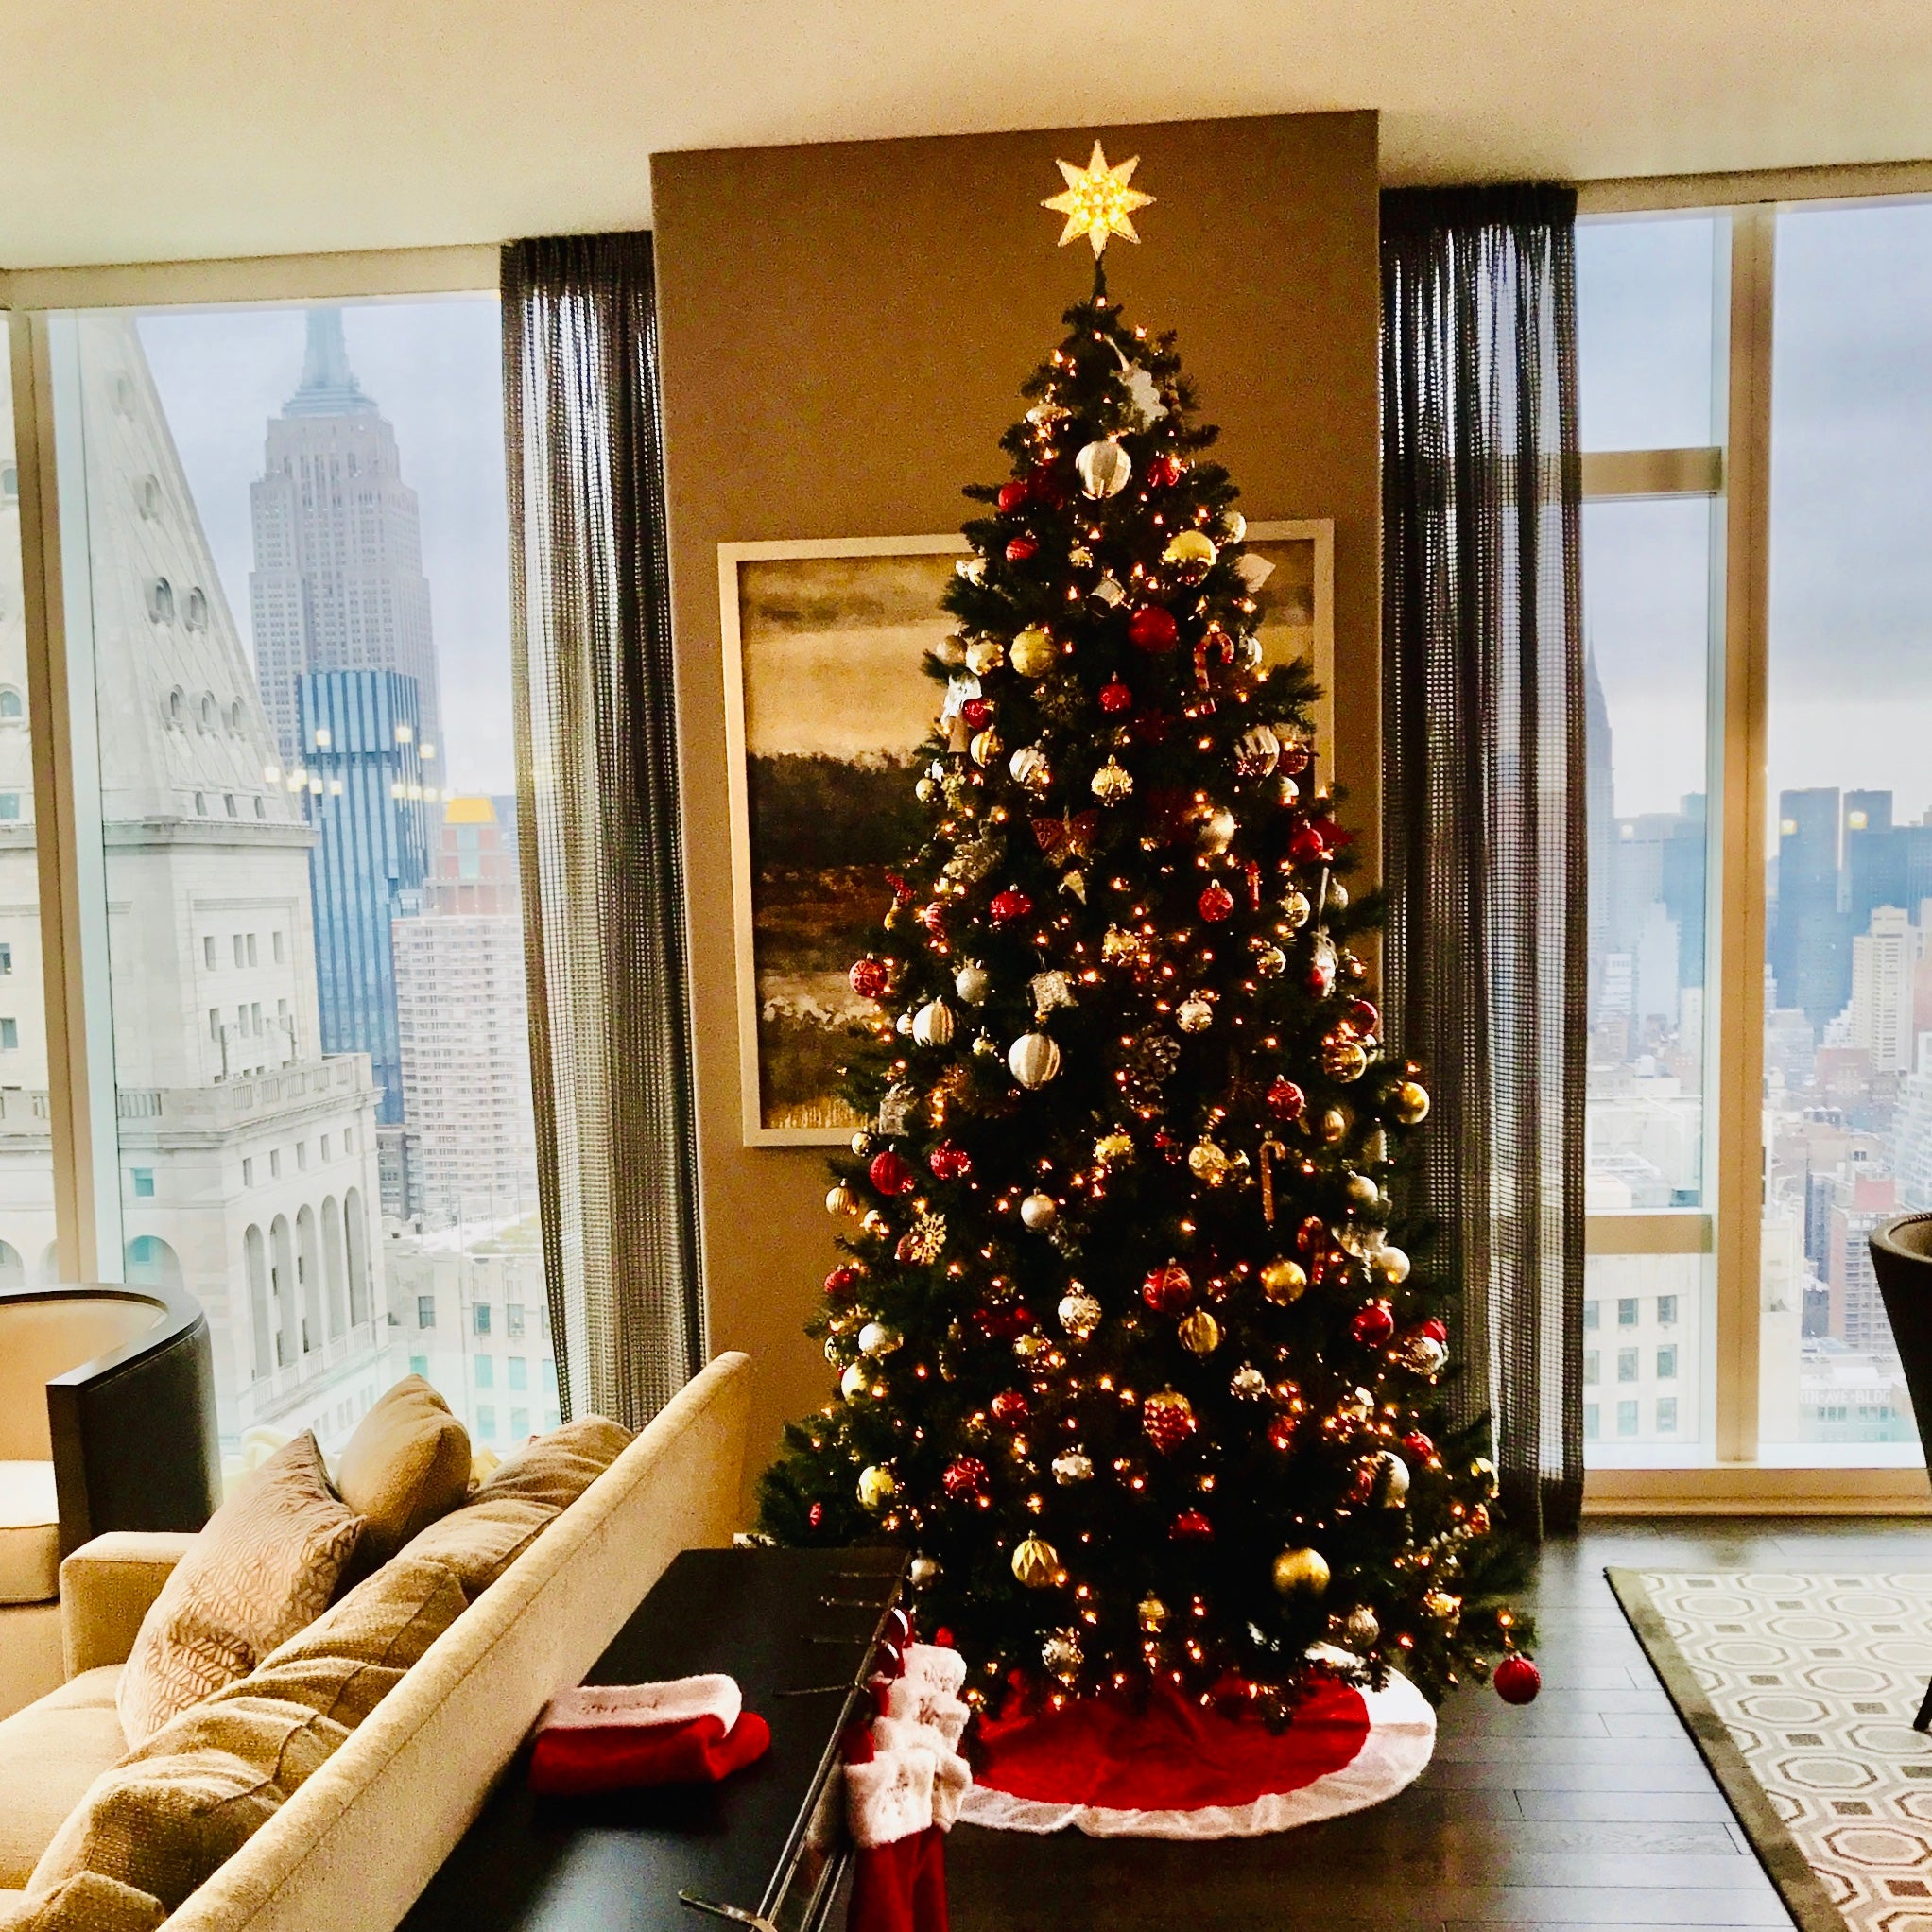 Decorated artificial Christmas tree in residential room